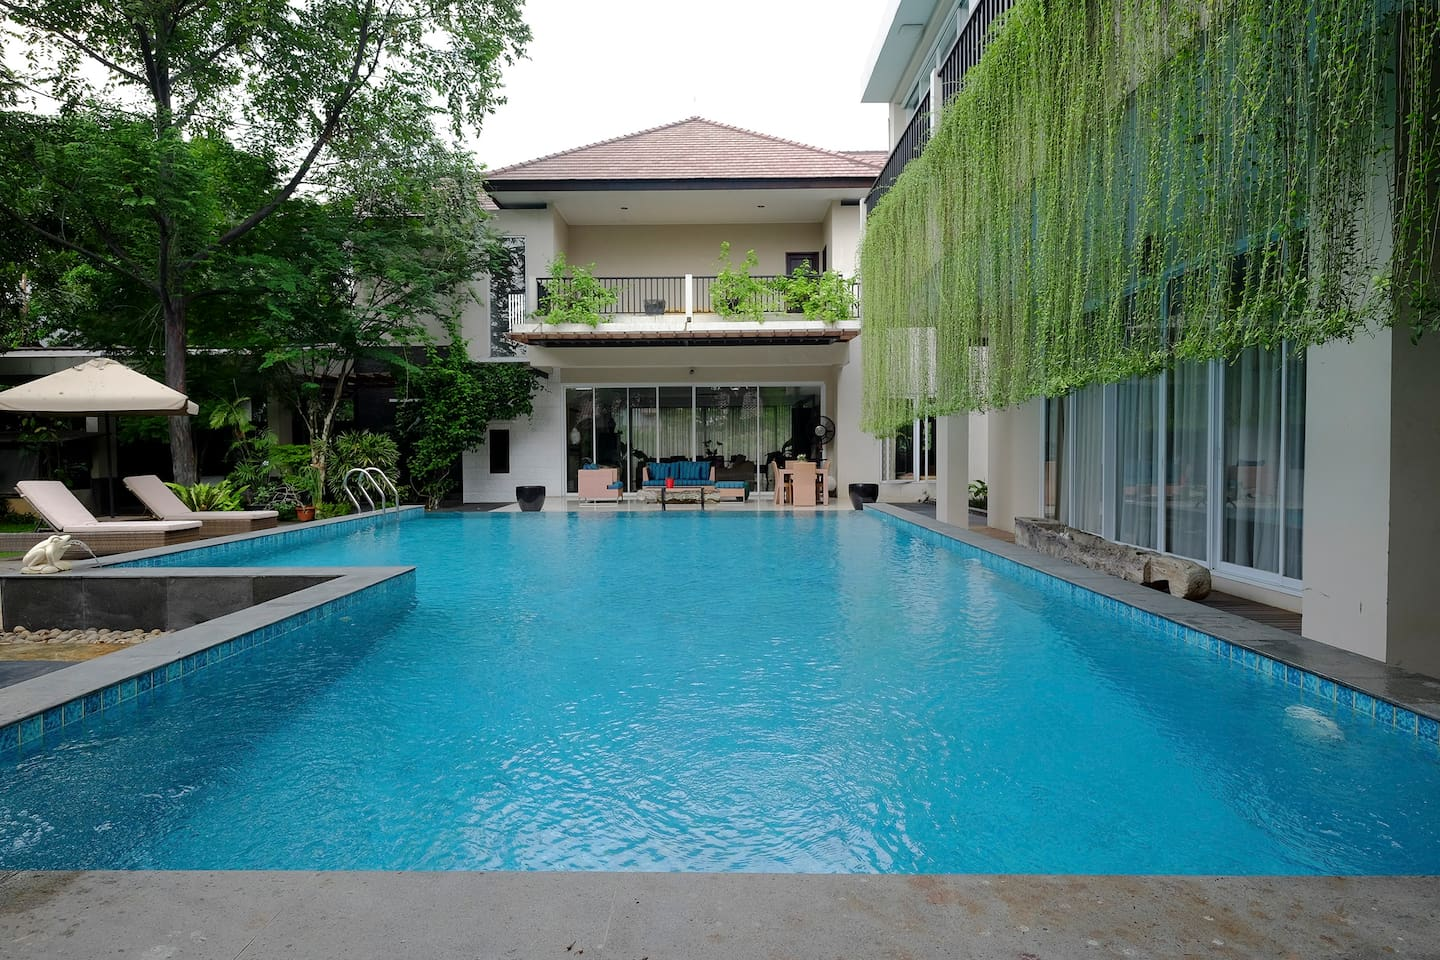 A serene 12-meter pool and deck in the backyard